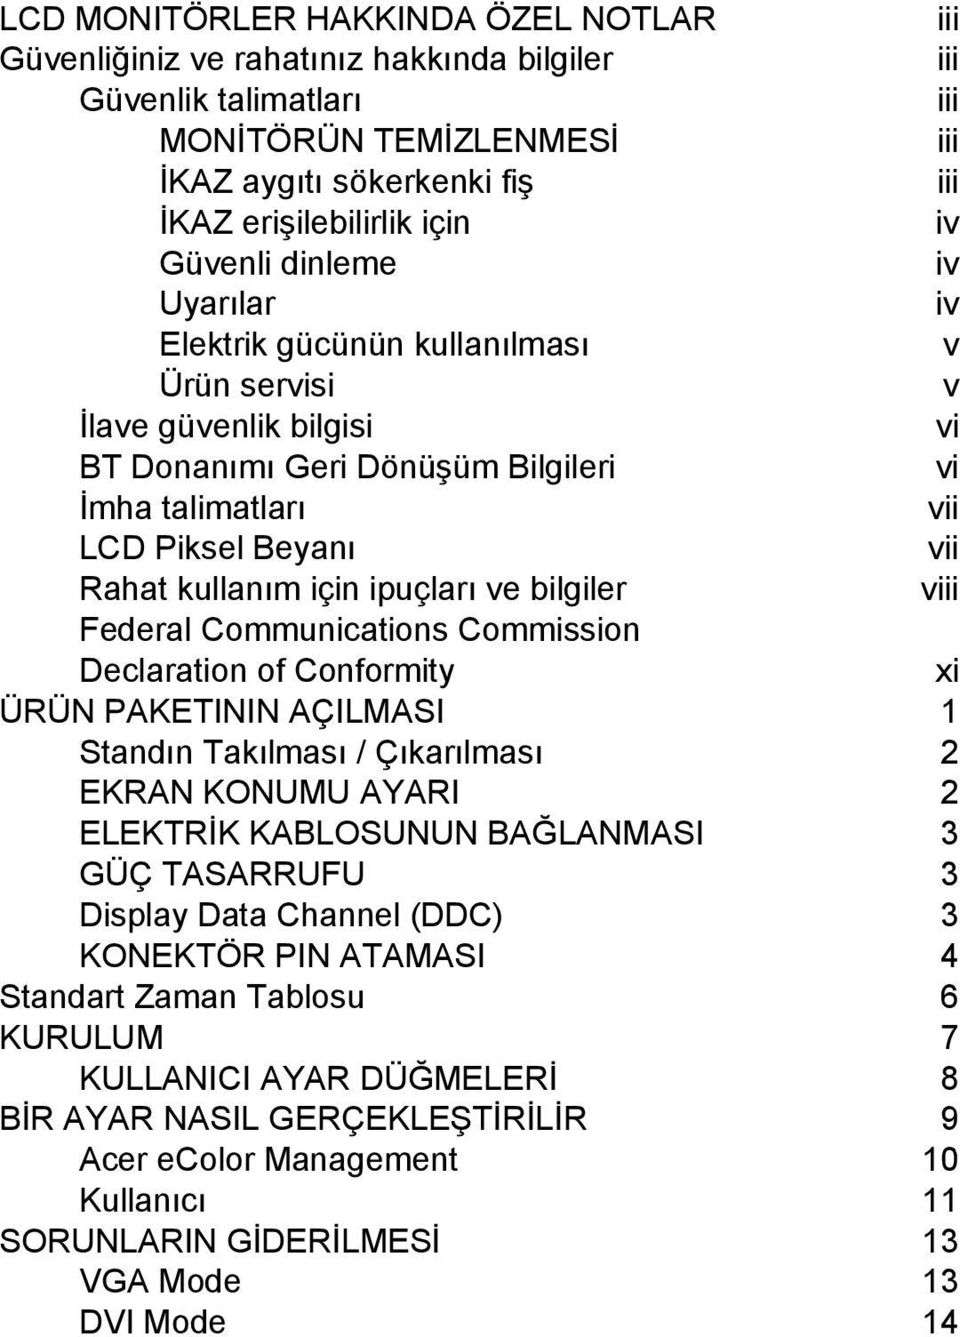 için ipuçları ve bilgiler viii Federal Communications Commission Declaration of Conformity xi ÜRÜN PAKETININ AÇILMASI 1 Standın Takılması / Çıkarılması 2 EKRAN KONUMU AYARI 2 ELEKTRİK KABLOSUNUN